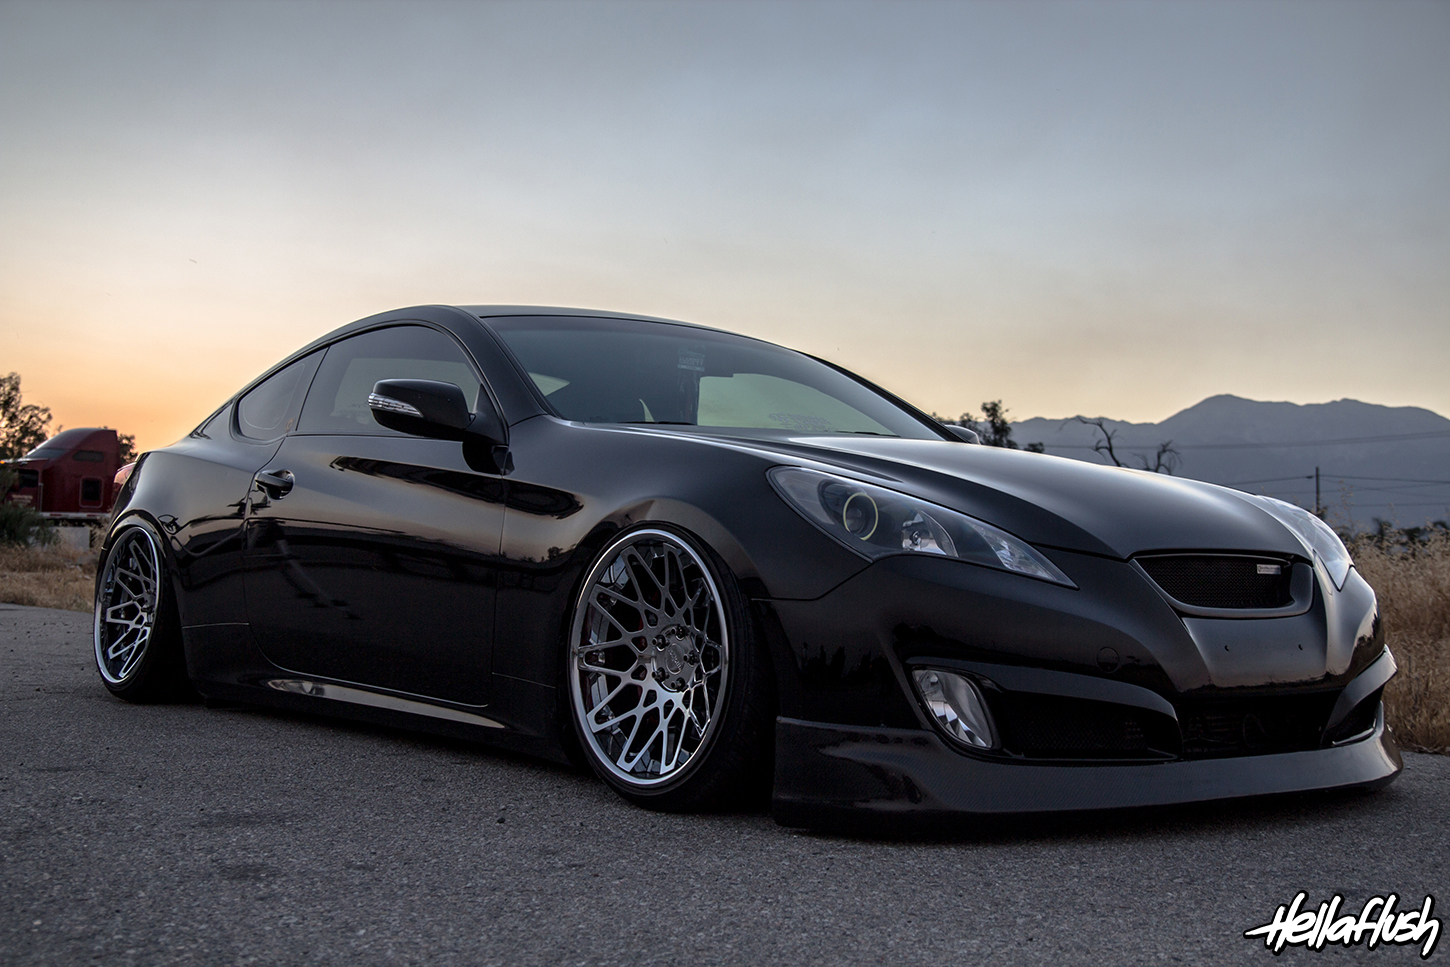 Big rick s slammed genesis coupe feature w more goodies page 6 hyundai genesis forum